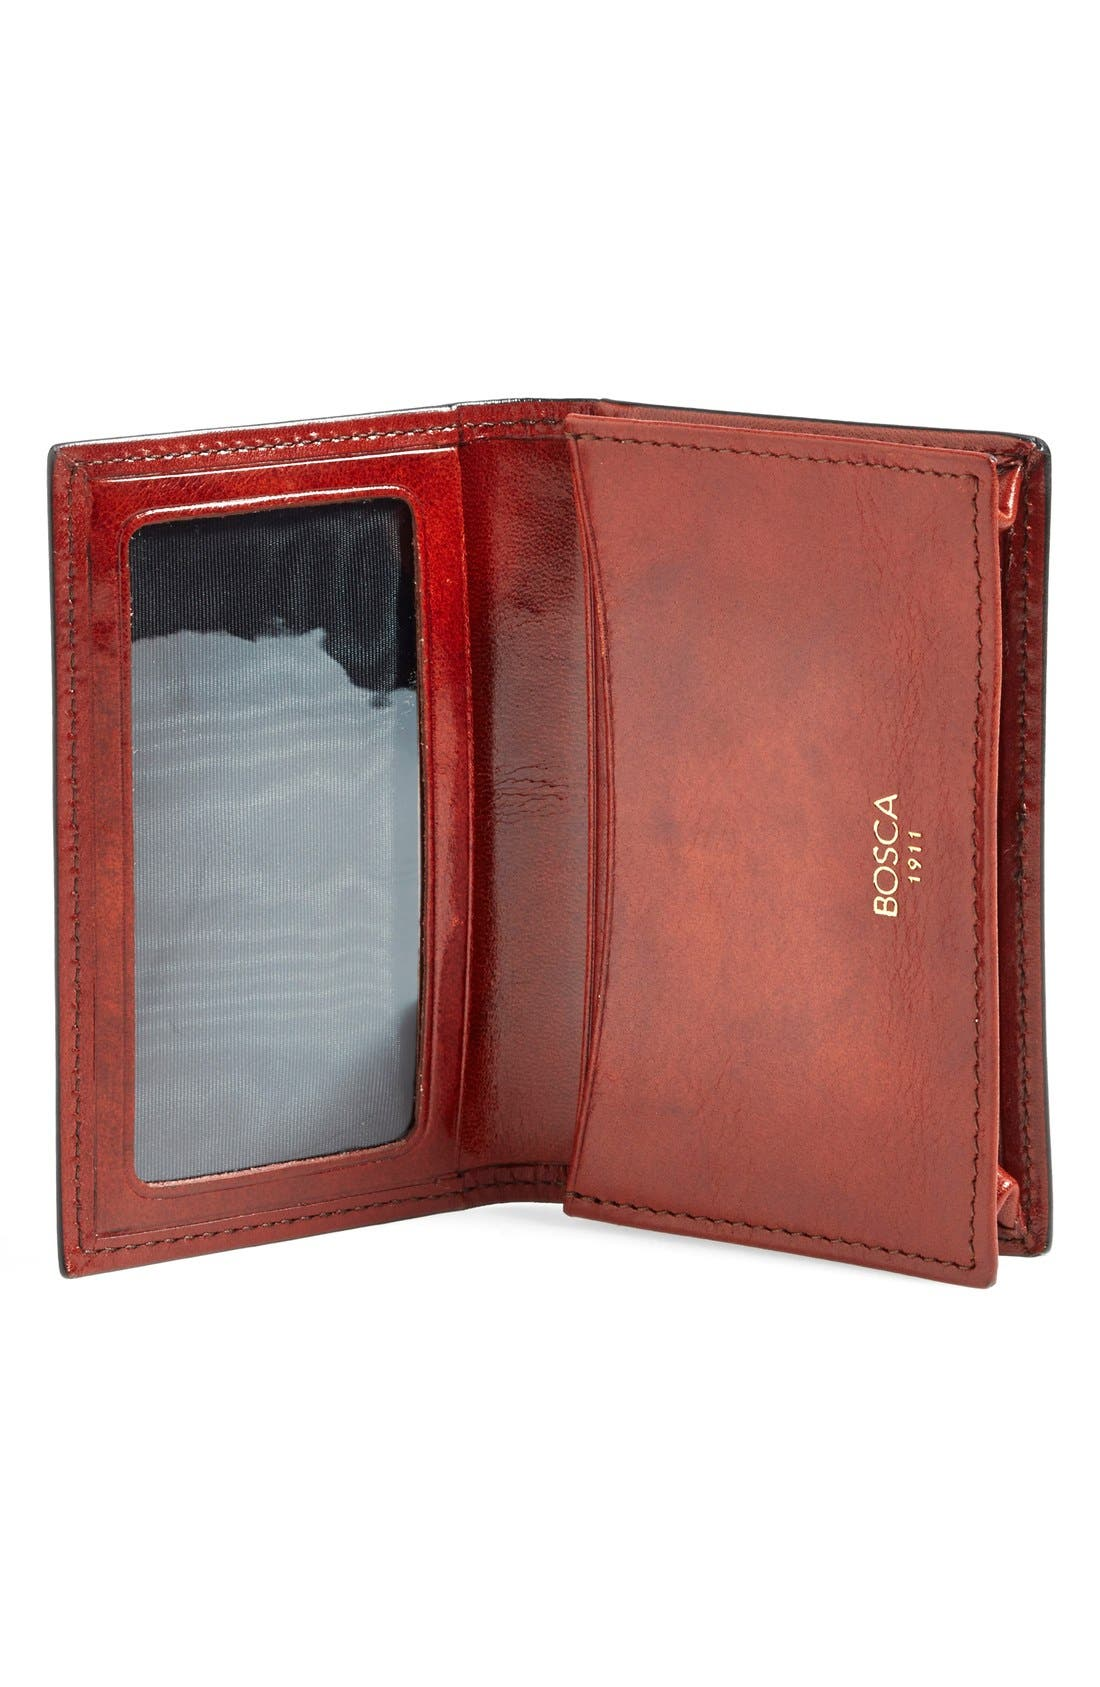 'Old Leather' Gusset Wallet,                             Alternate thumbnail 7, color,